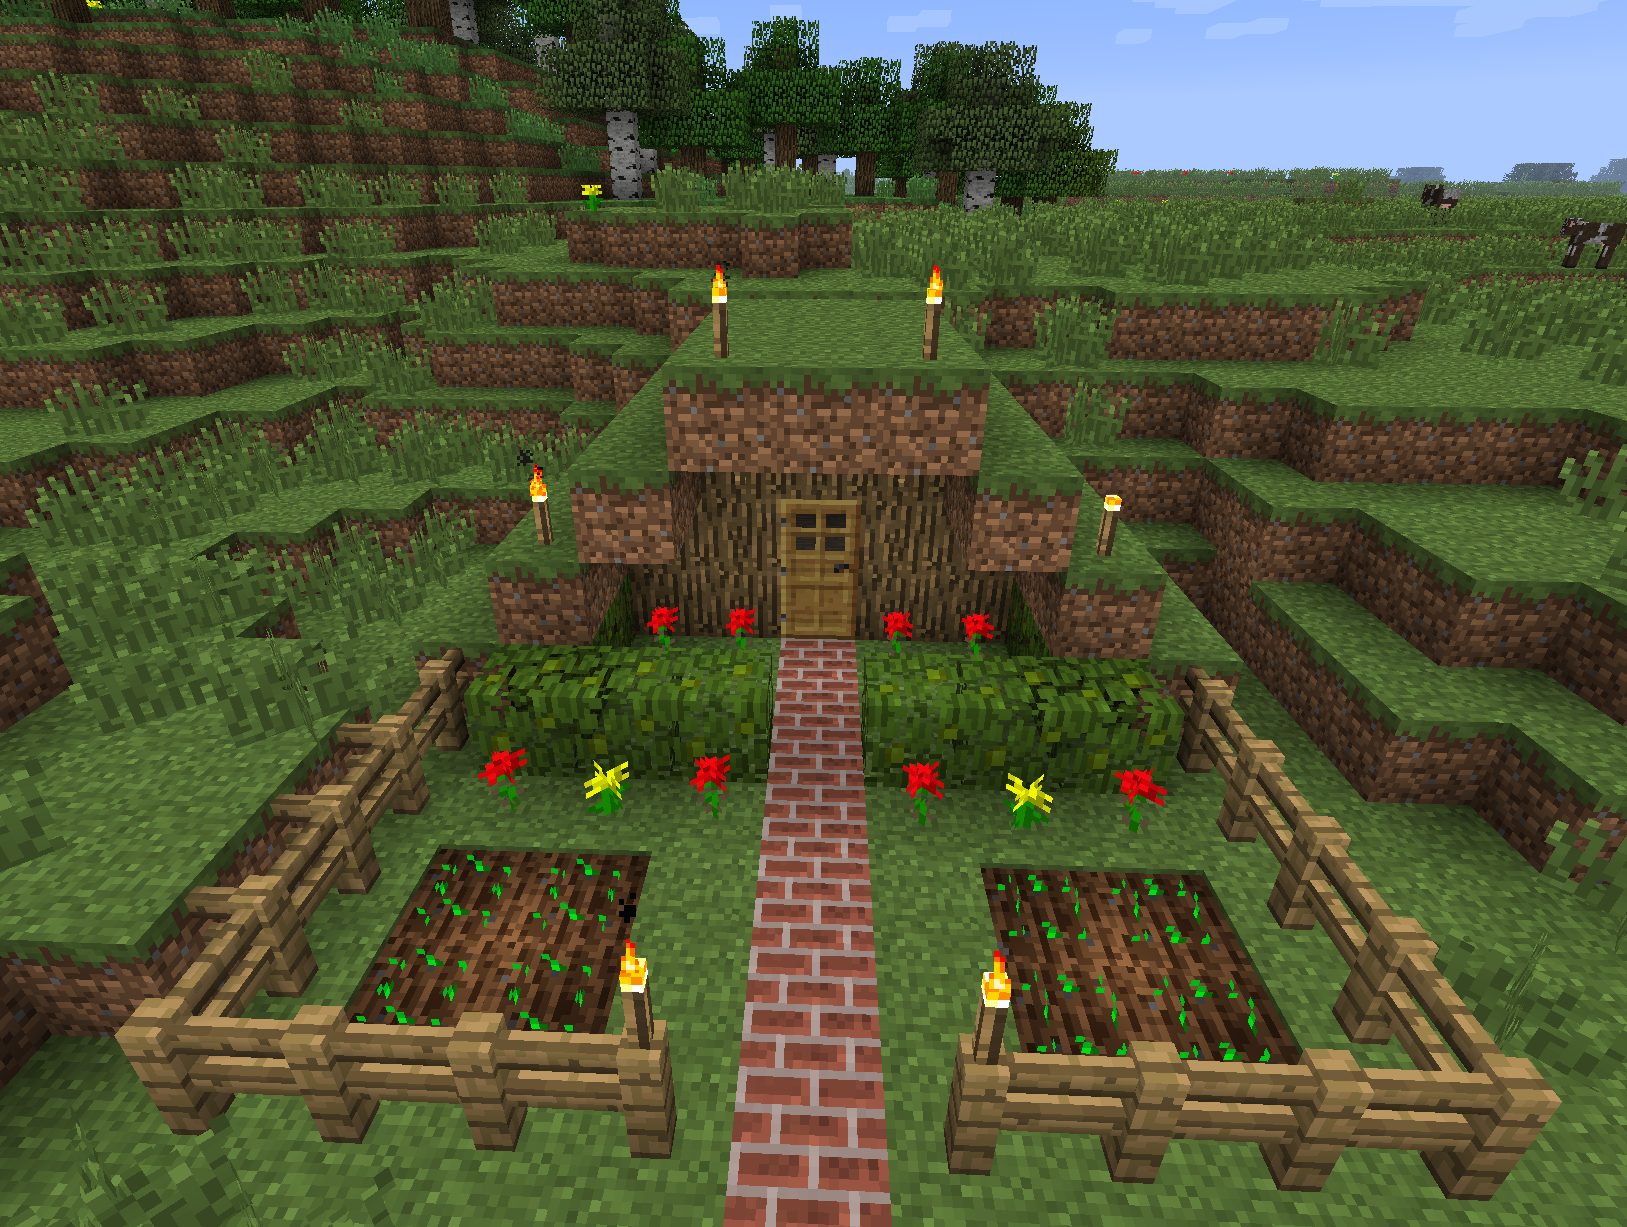 cool stuff images  Cool Things to Build in Minecraft  Minecraft Build  Minecraft survival